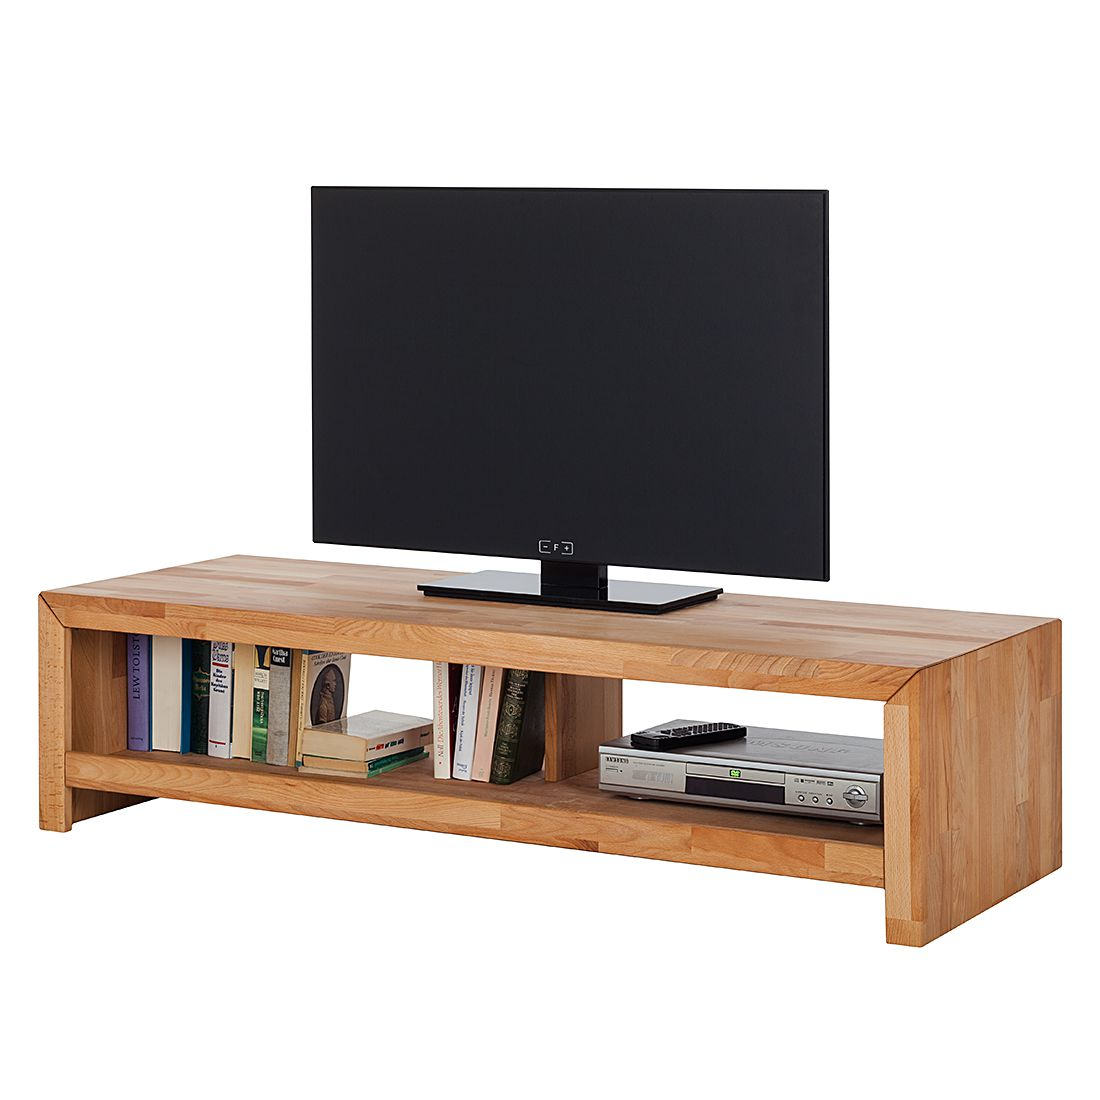 ars natura lowboard kireawood ii kernbuche tv board. Black Bedroom Furniture Sets. Home Design Ideas